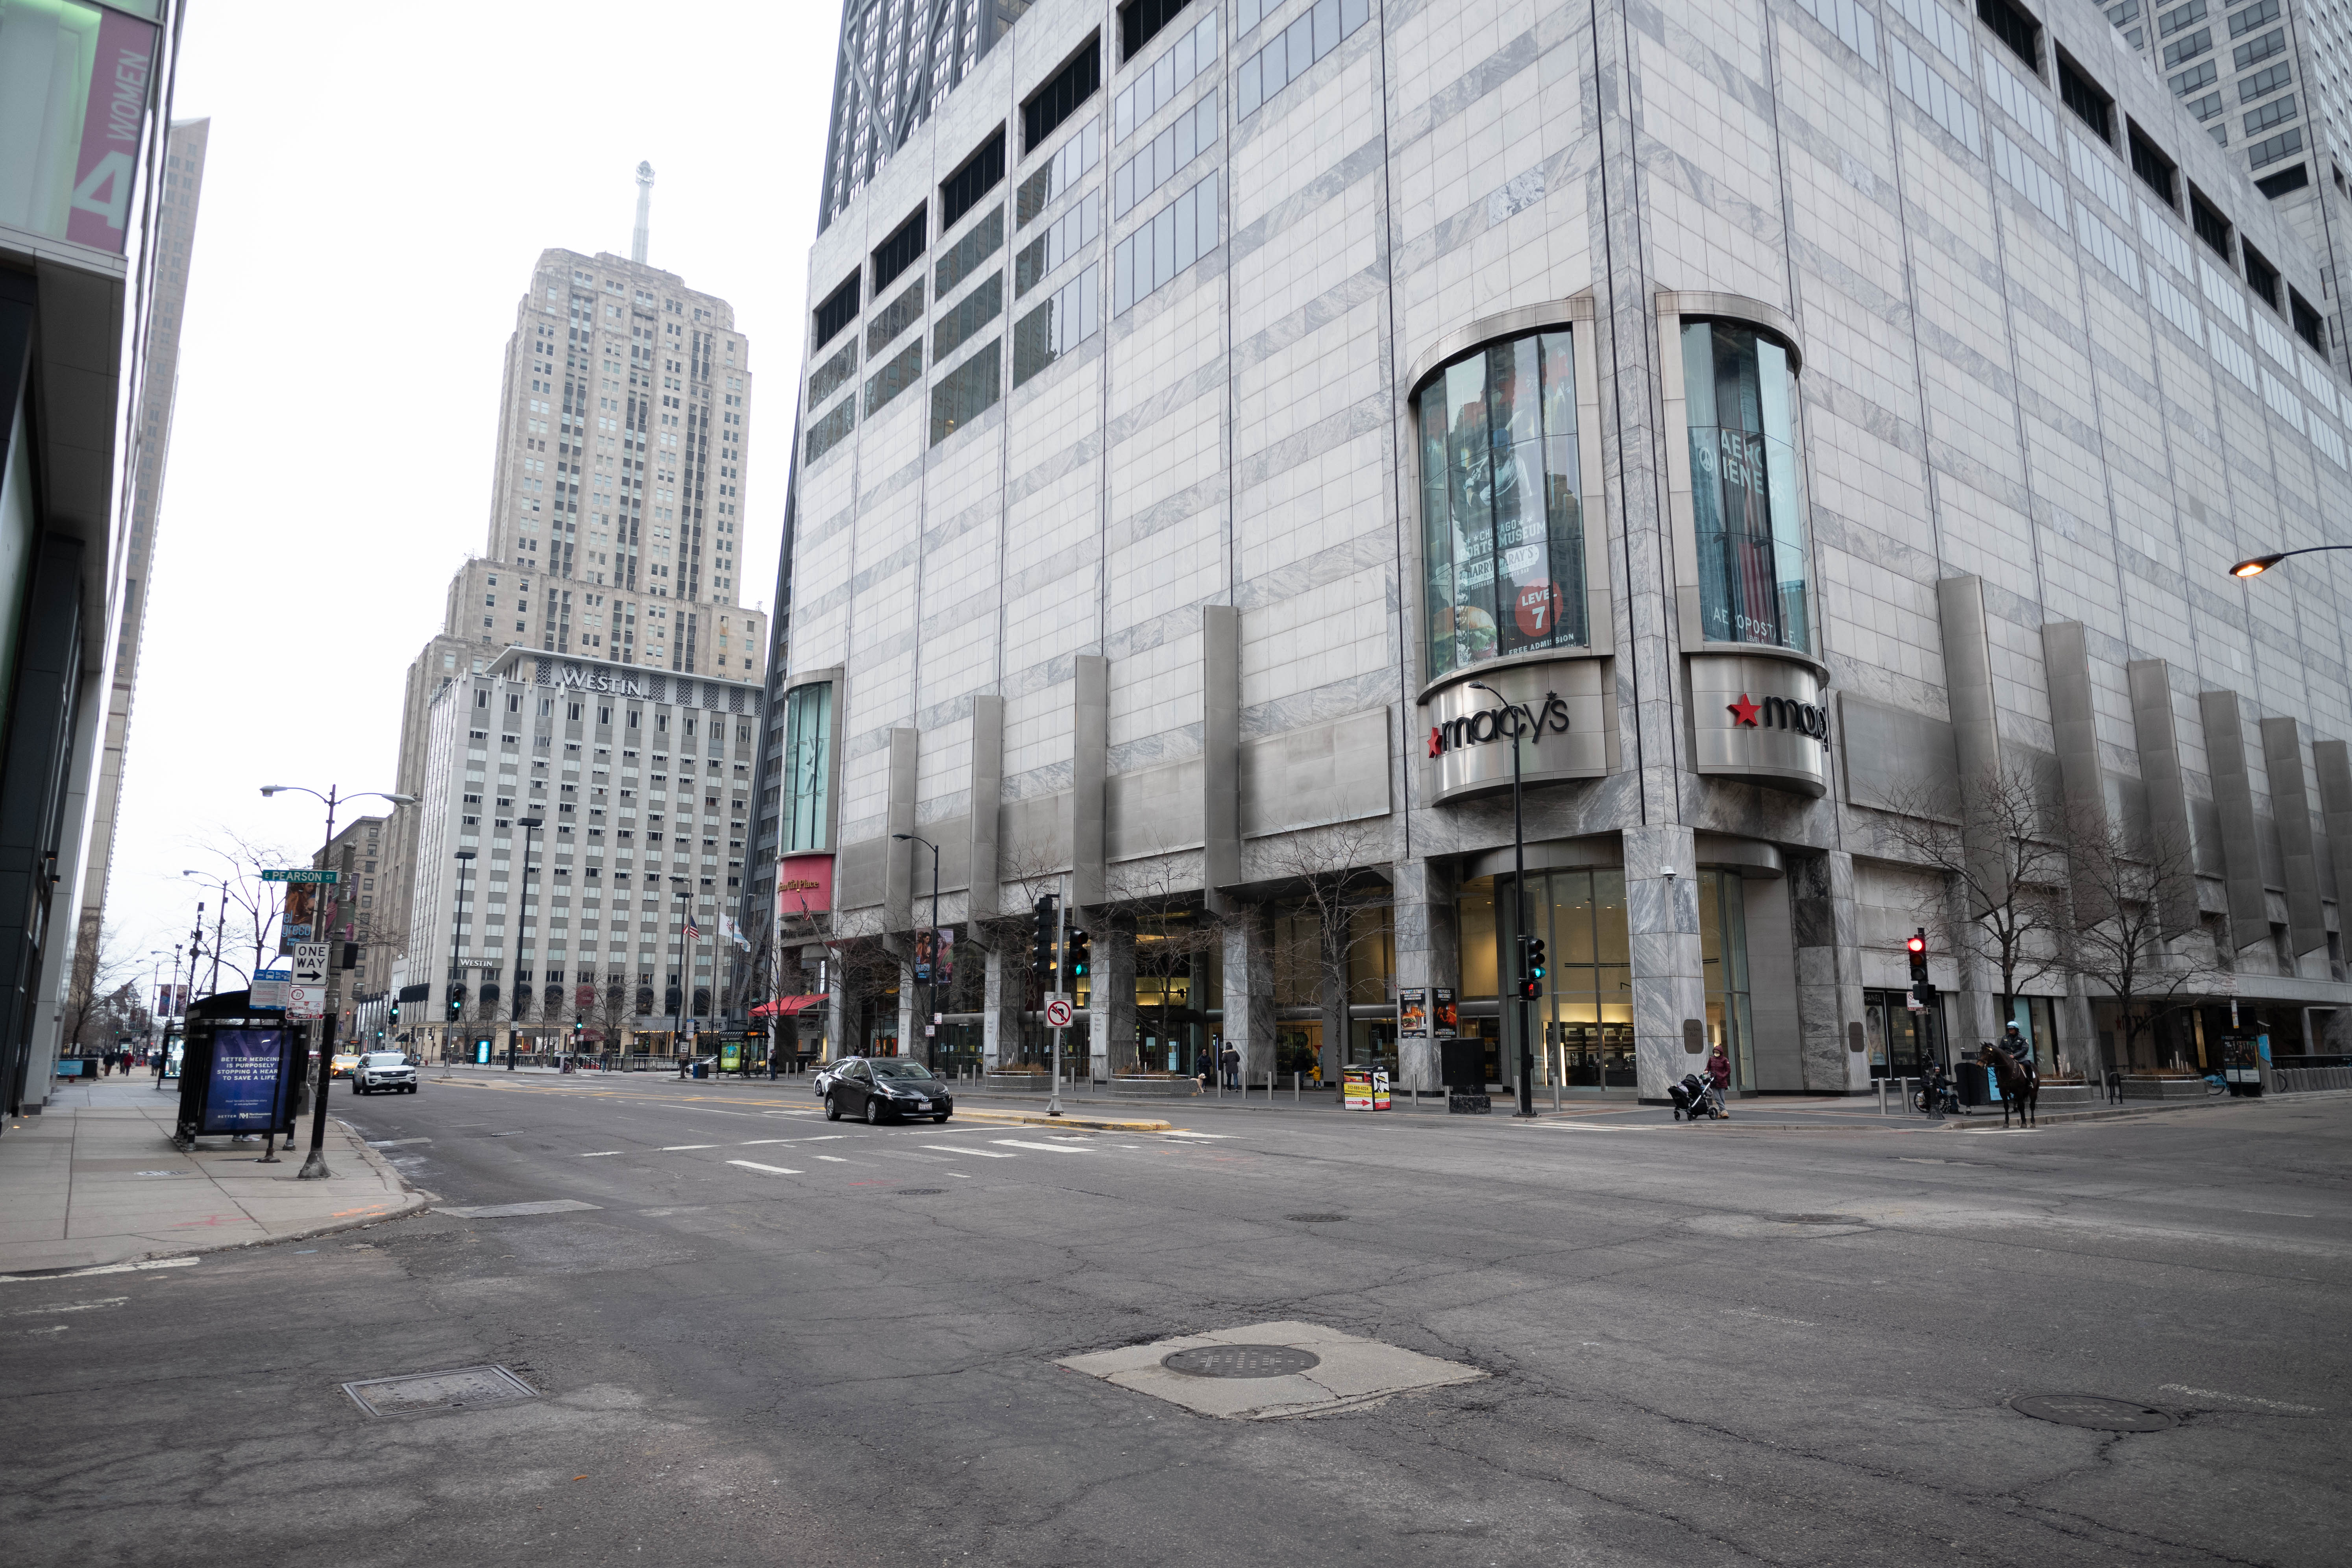 Atmosphere photo from a major Chicago street during the first week of containment for the CoronavirusCoronavirus Outbreak, Chicago, USA - 19 Mar 2020